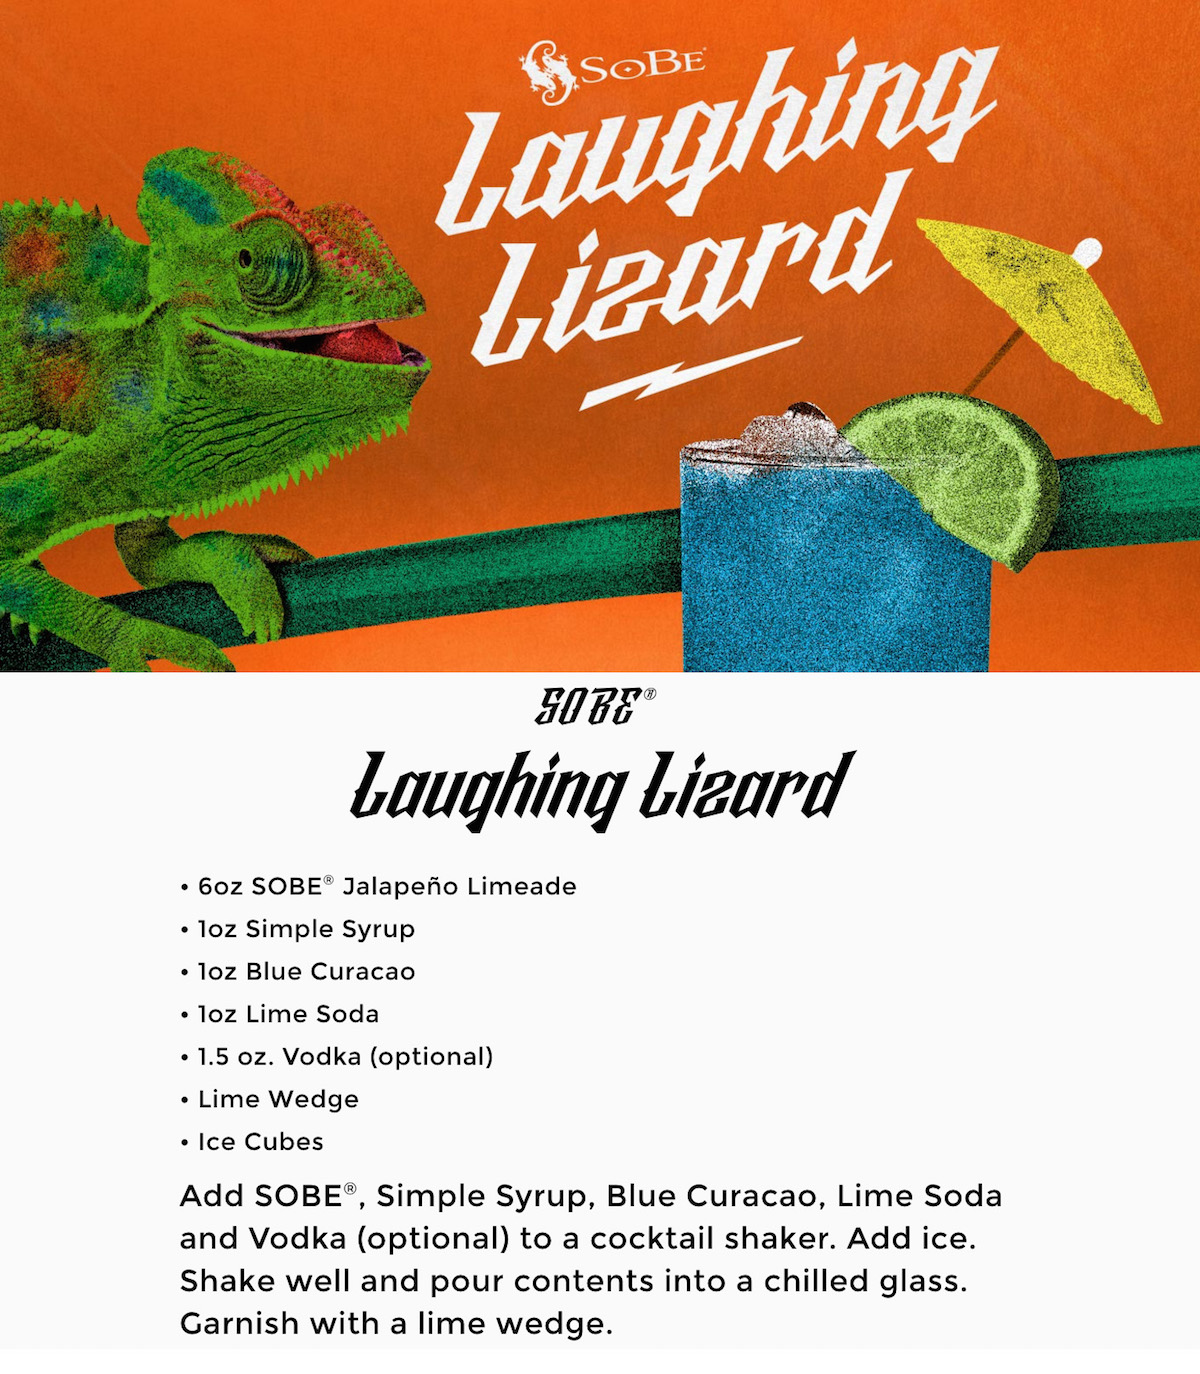 SoBe Laughing Lizard cocktail recipe